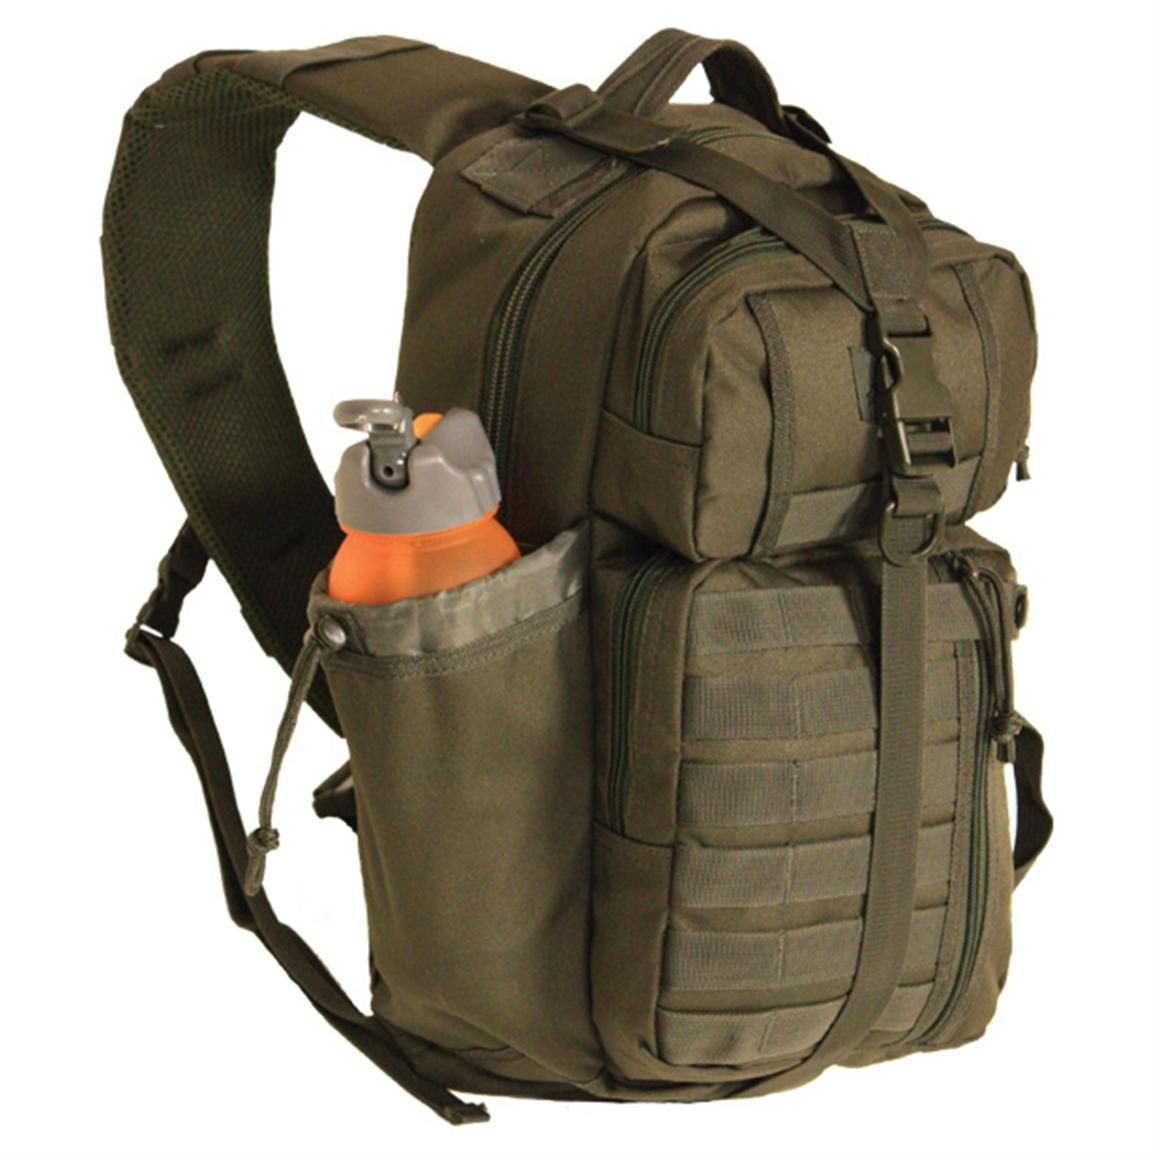 This Red Rock Outdoor Gear Rambler Sling Bag Is A Smart Single Strap Conceal Carry Design That Easily Rotates From Back To Chest For Quick Access